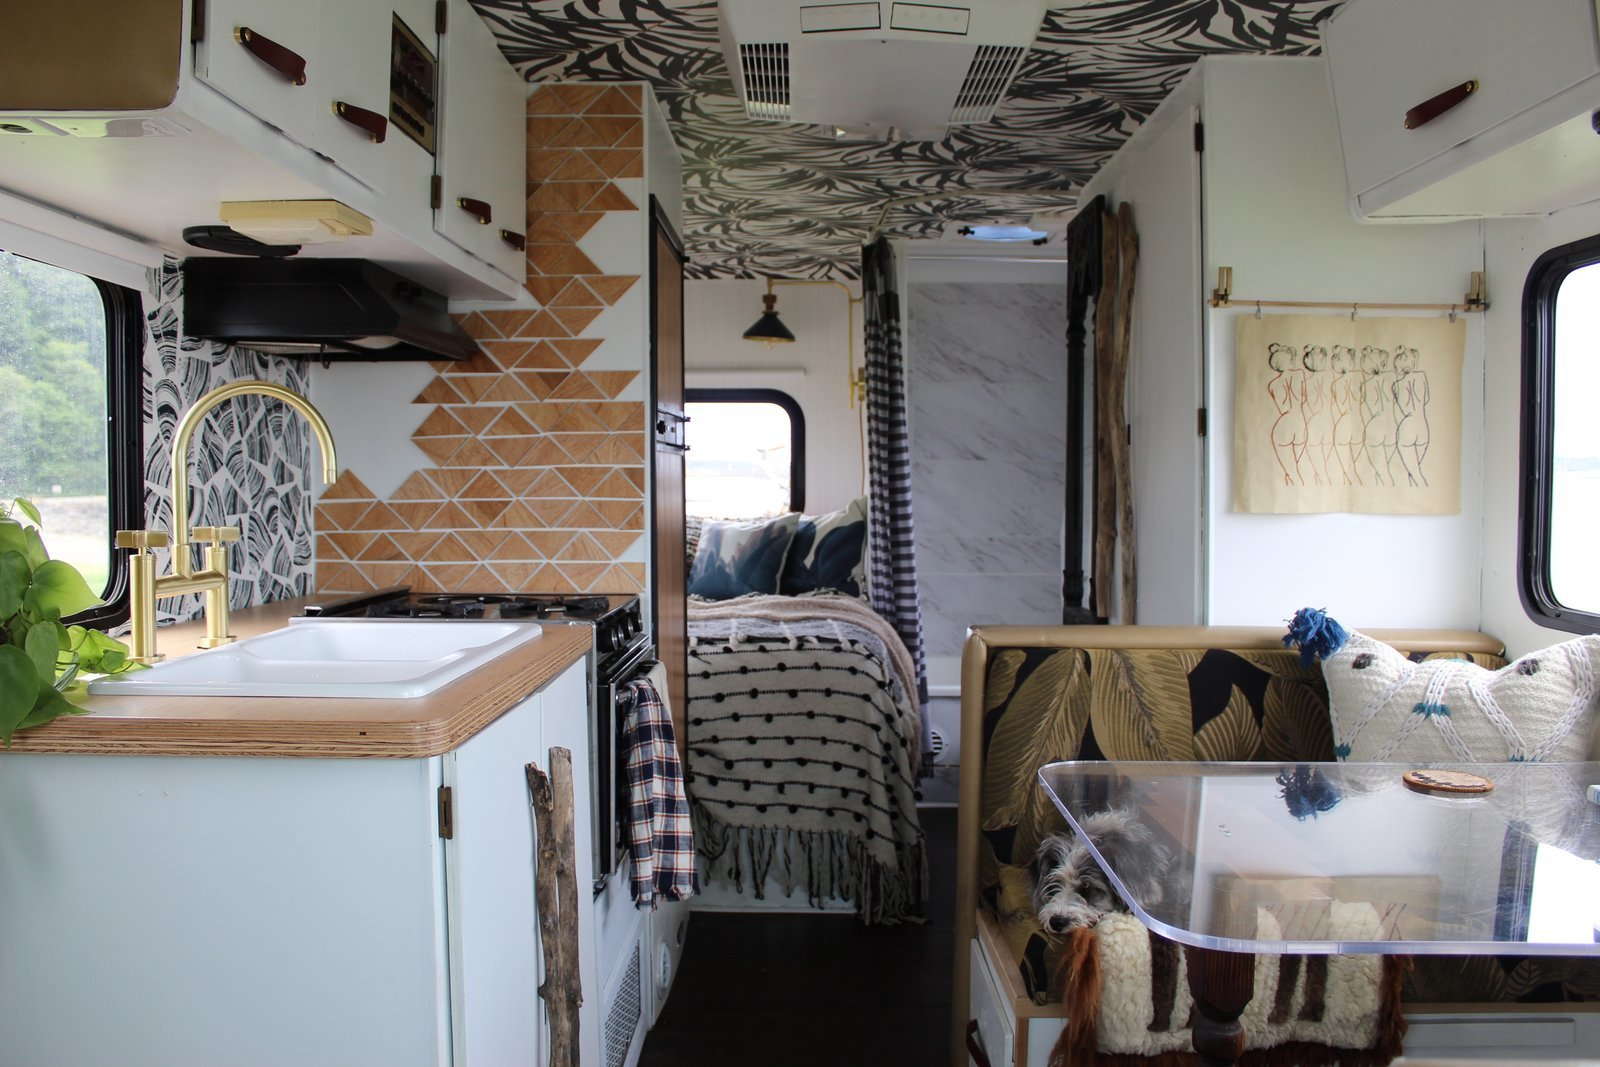 Modern rv interiors - The New Modern Bohemian Interiors Of The Renovated Rv A Portland Couple Renovate